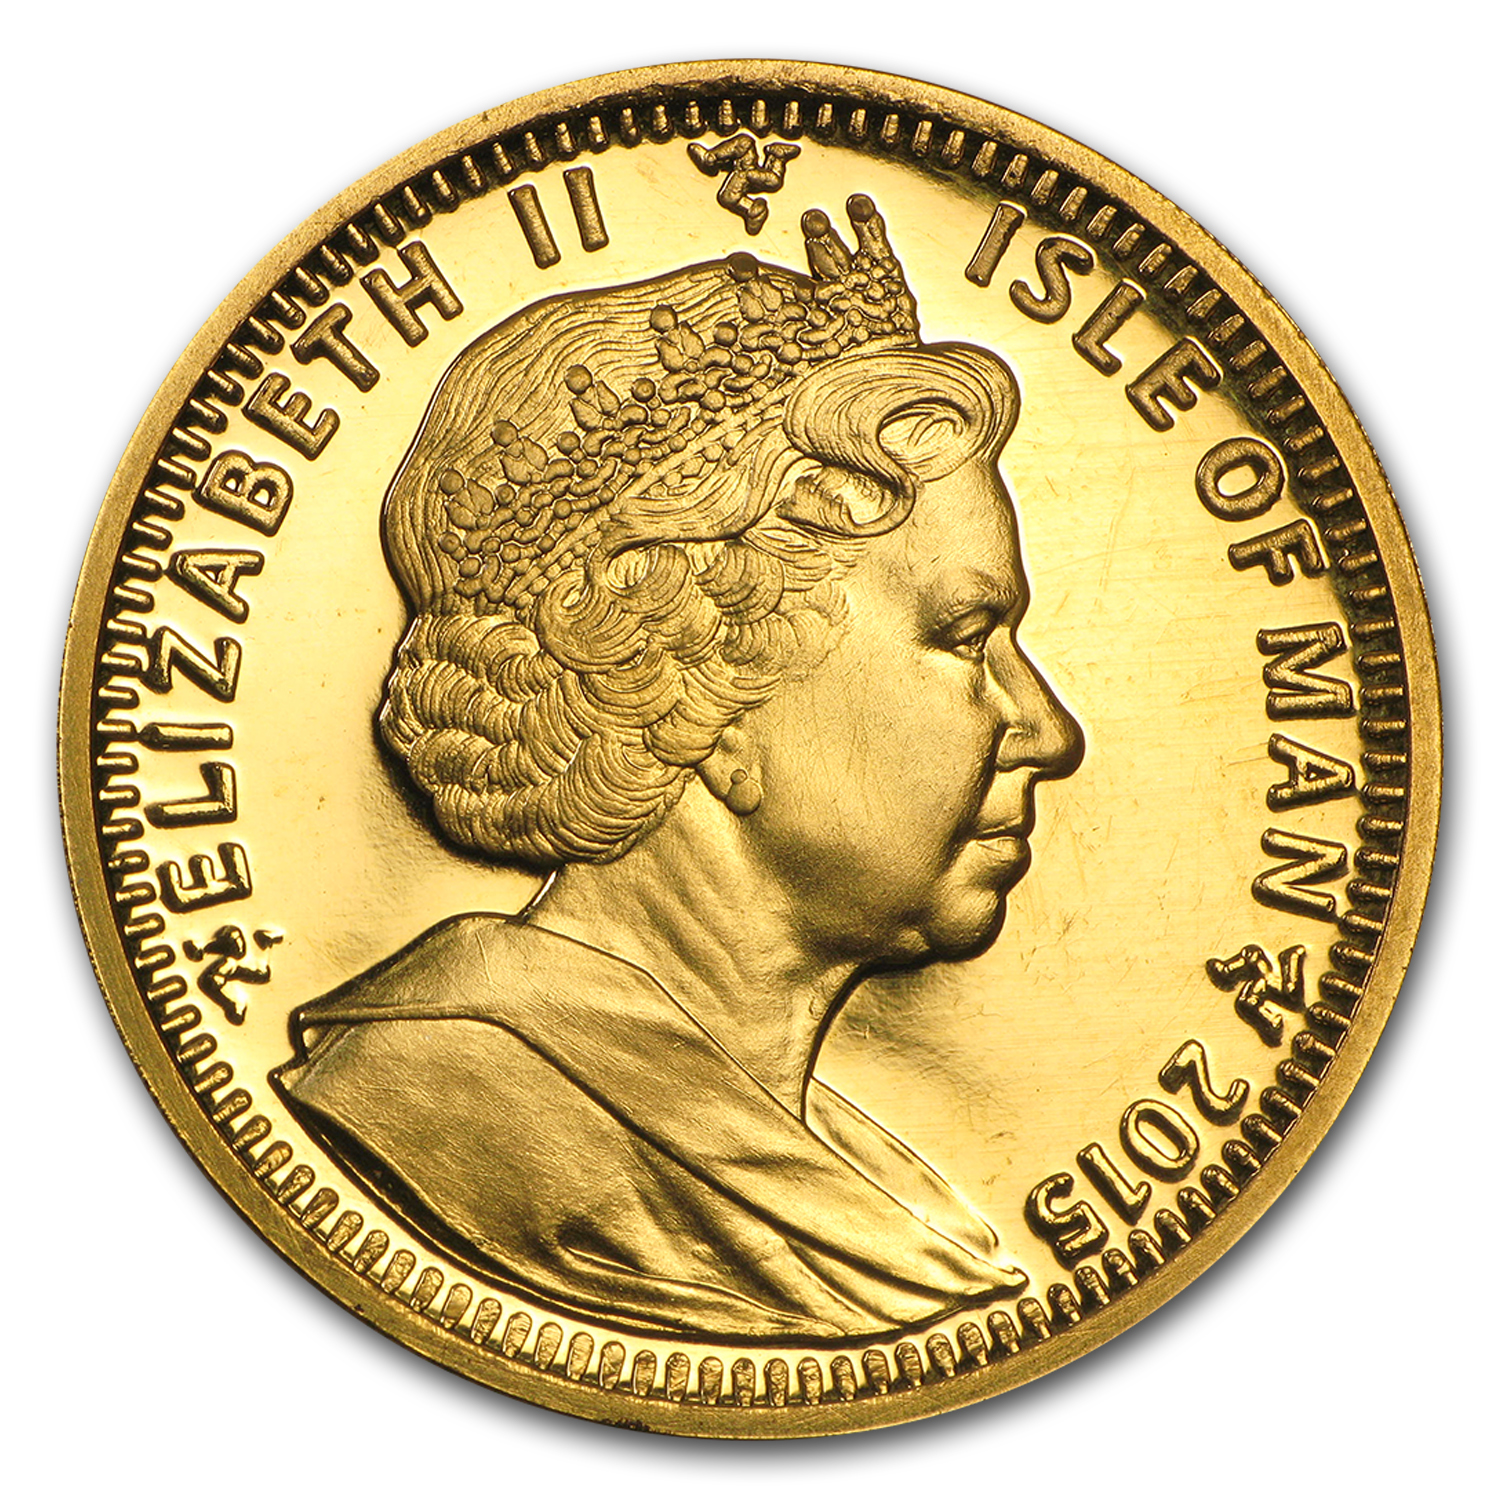 2015 Isle of Man 1 oz Gold Noble BU